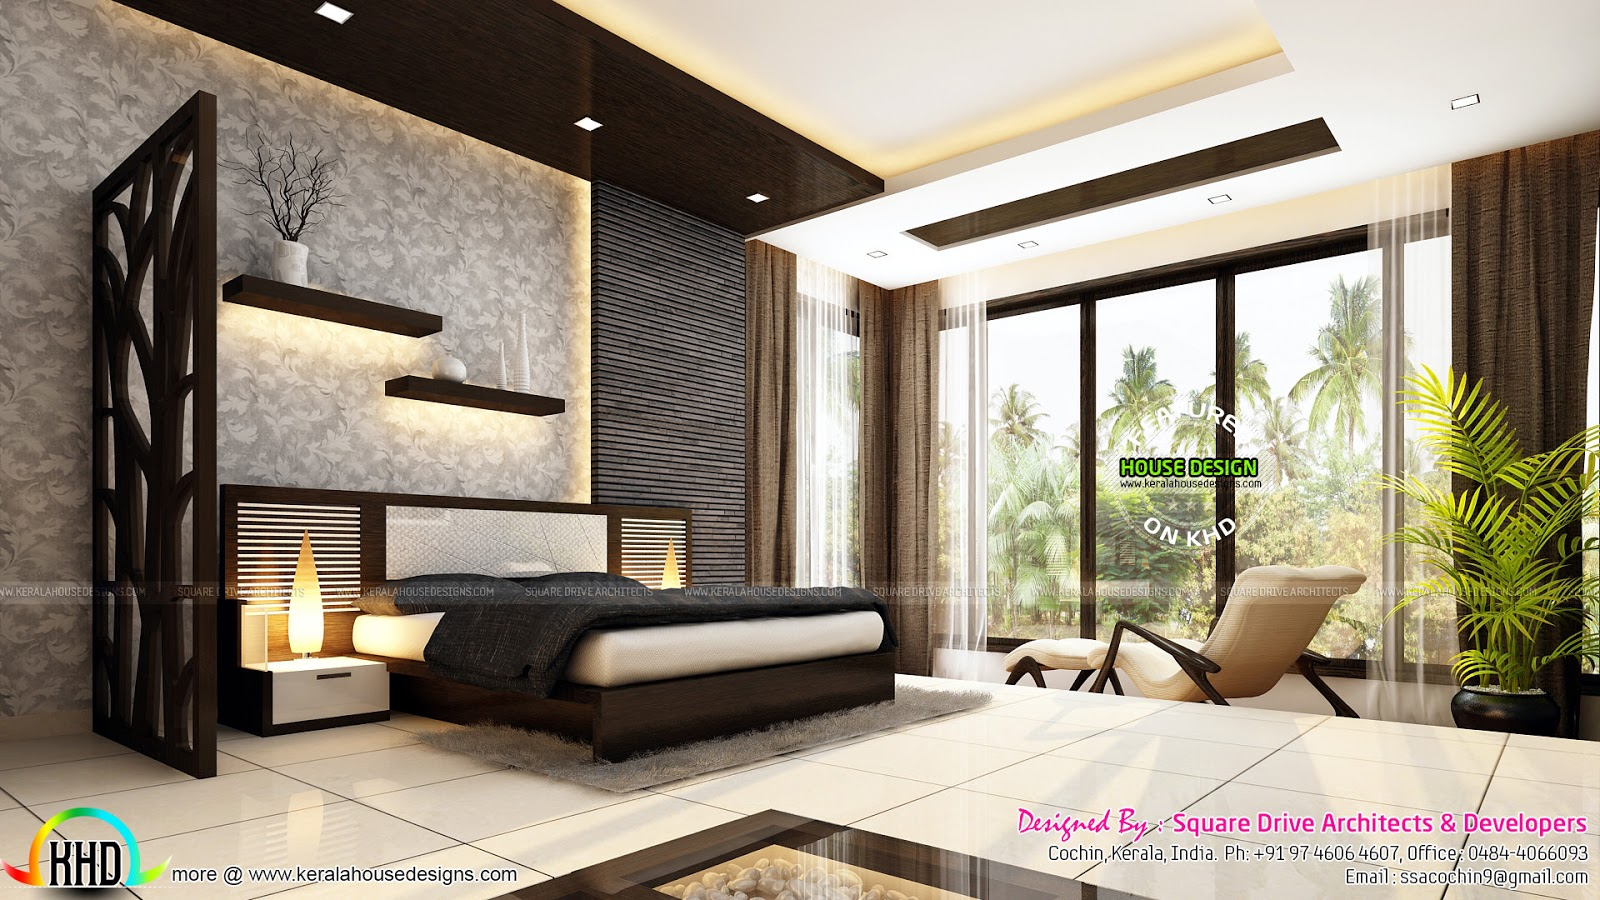 Very beautiful modern interior designs kerala home Home interior design bedroom